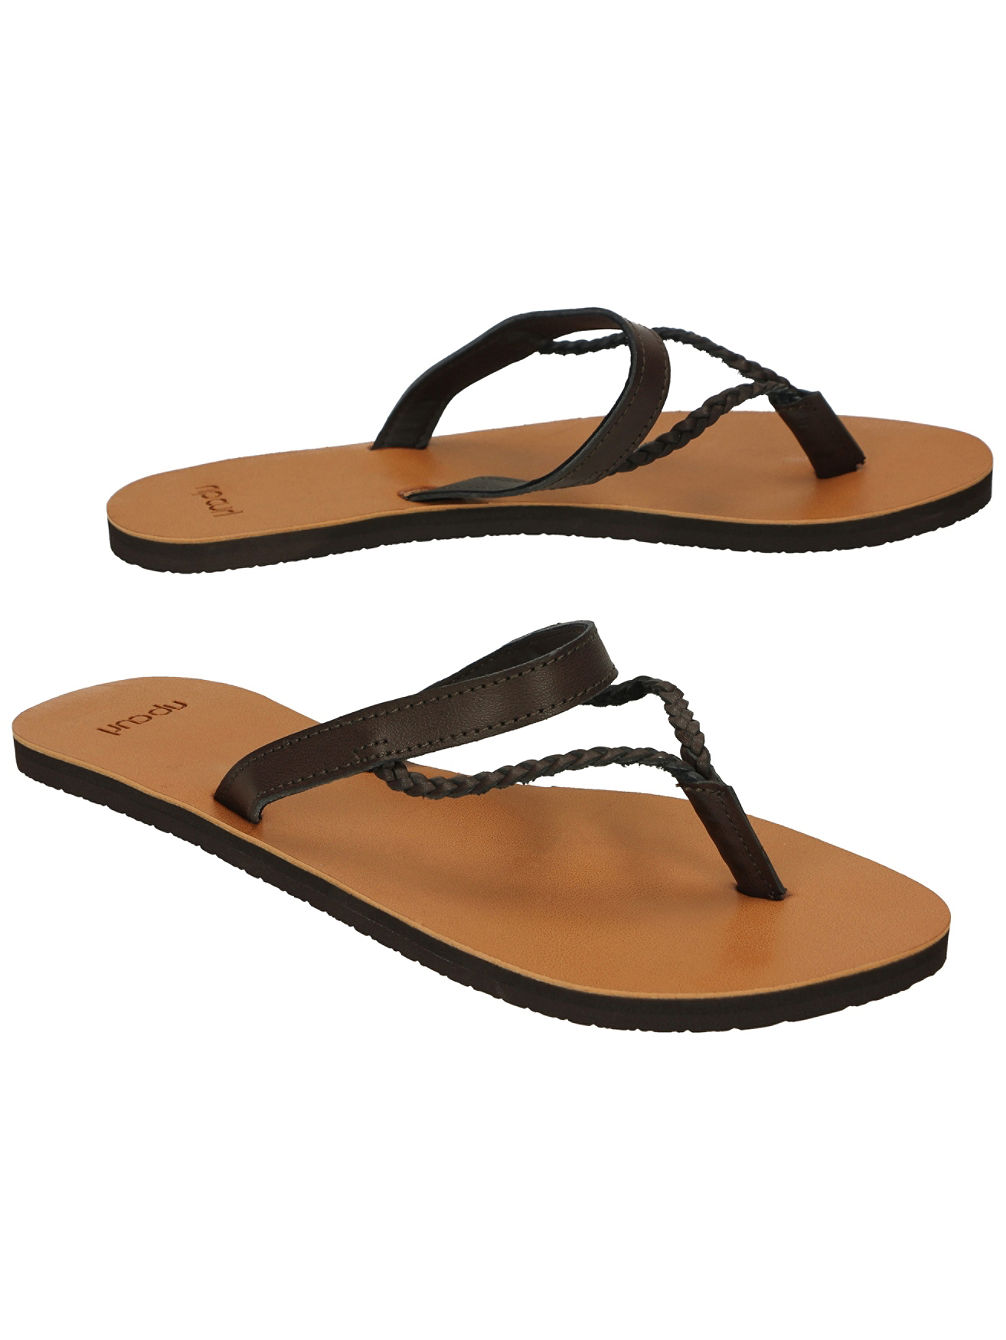 ca627528df7cb7 ... Buy Rip Curl Livy Sandals Women online at Blue Tomato ...